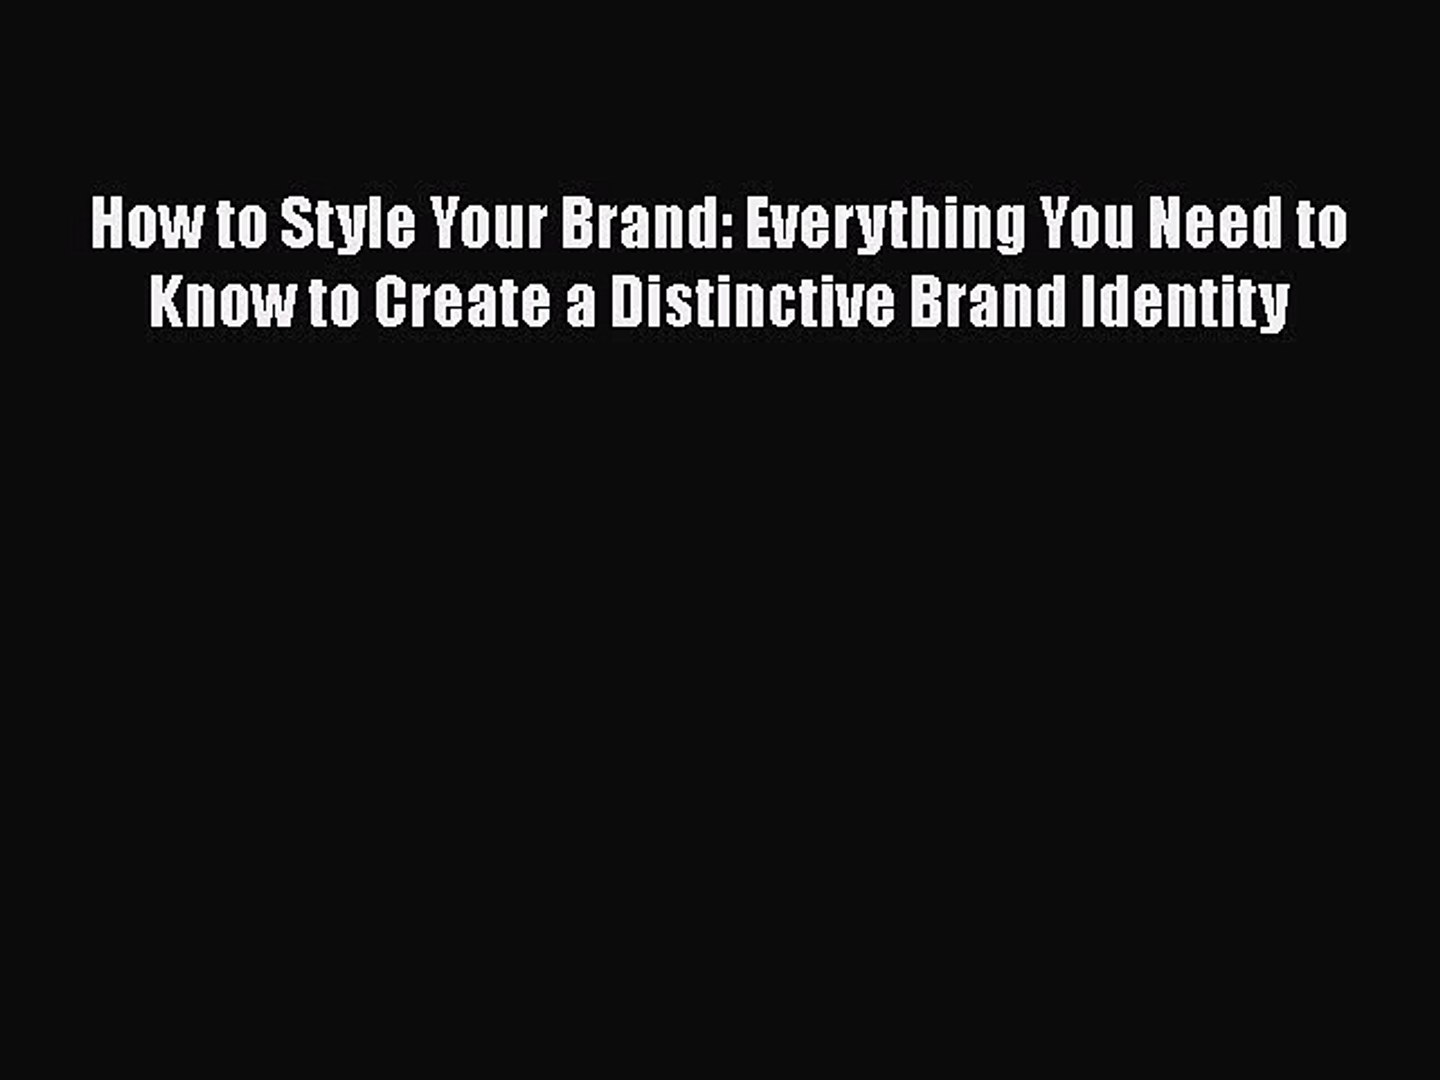 [Read book] How to Style Your Brand: Everything You Need to Know to Create a Distinctive Brand